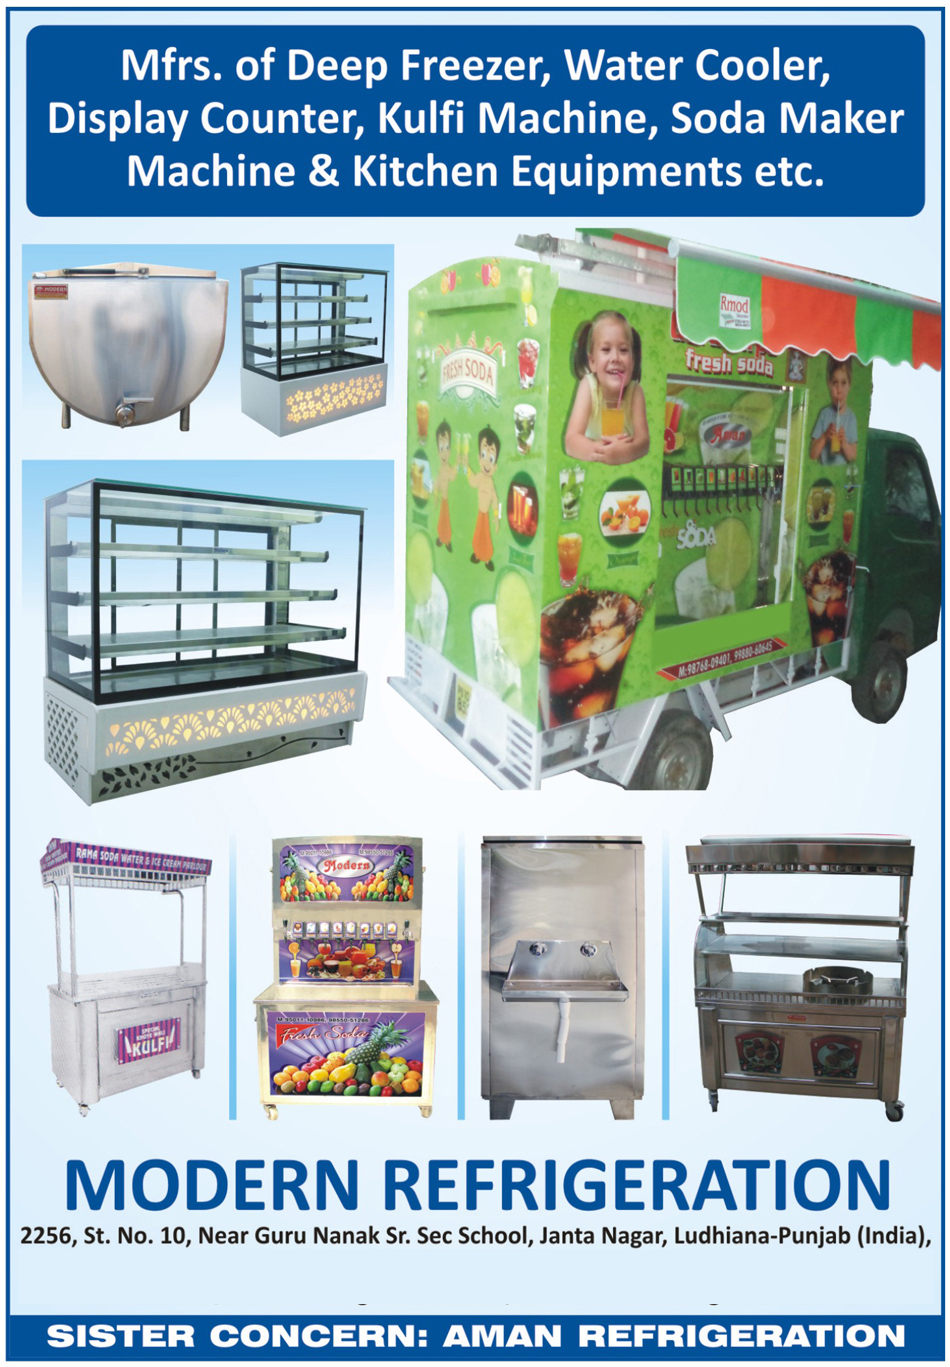 Deep Freezers, Water Coolers, Display Counters, Kulfi Machines, Soda Maker Machines, Kitchen Equipments, Mobile Van Soda Maker Machine, Vehicle Soda Maker Machine, 6 Valve Soda Maker Machine, 10 Valve Mobile Soda Maker Machine